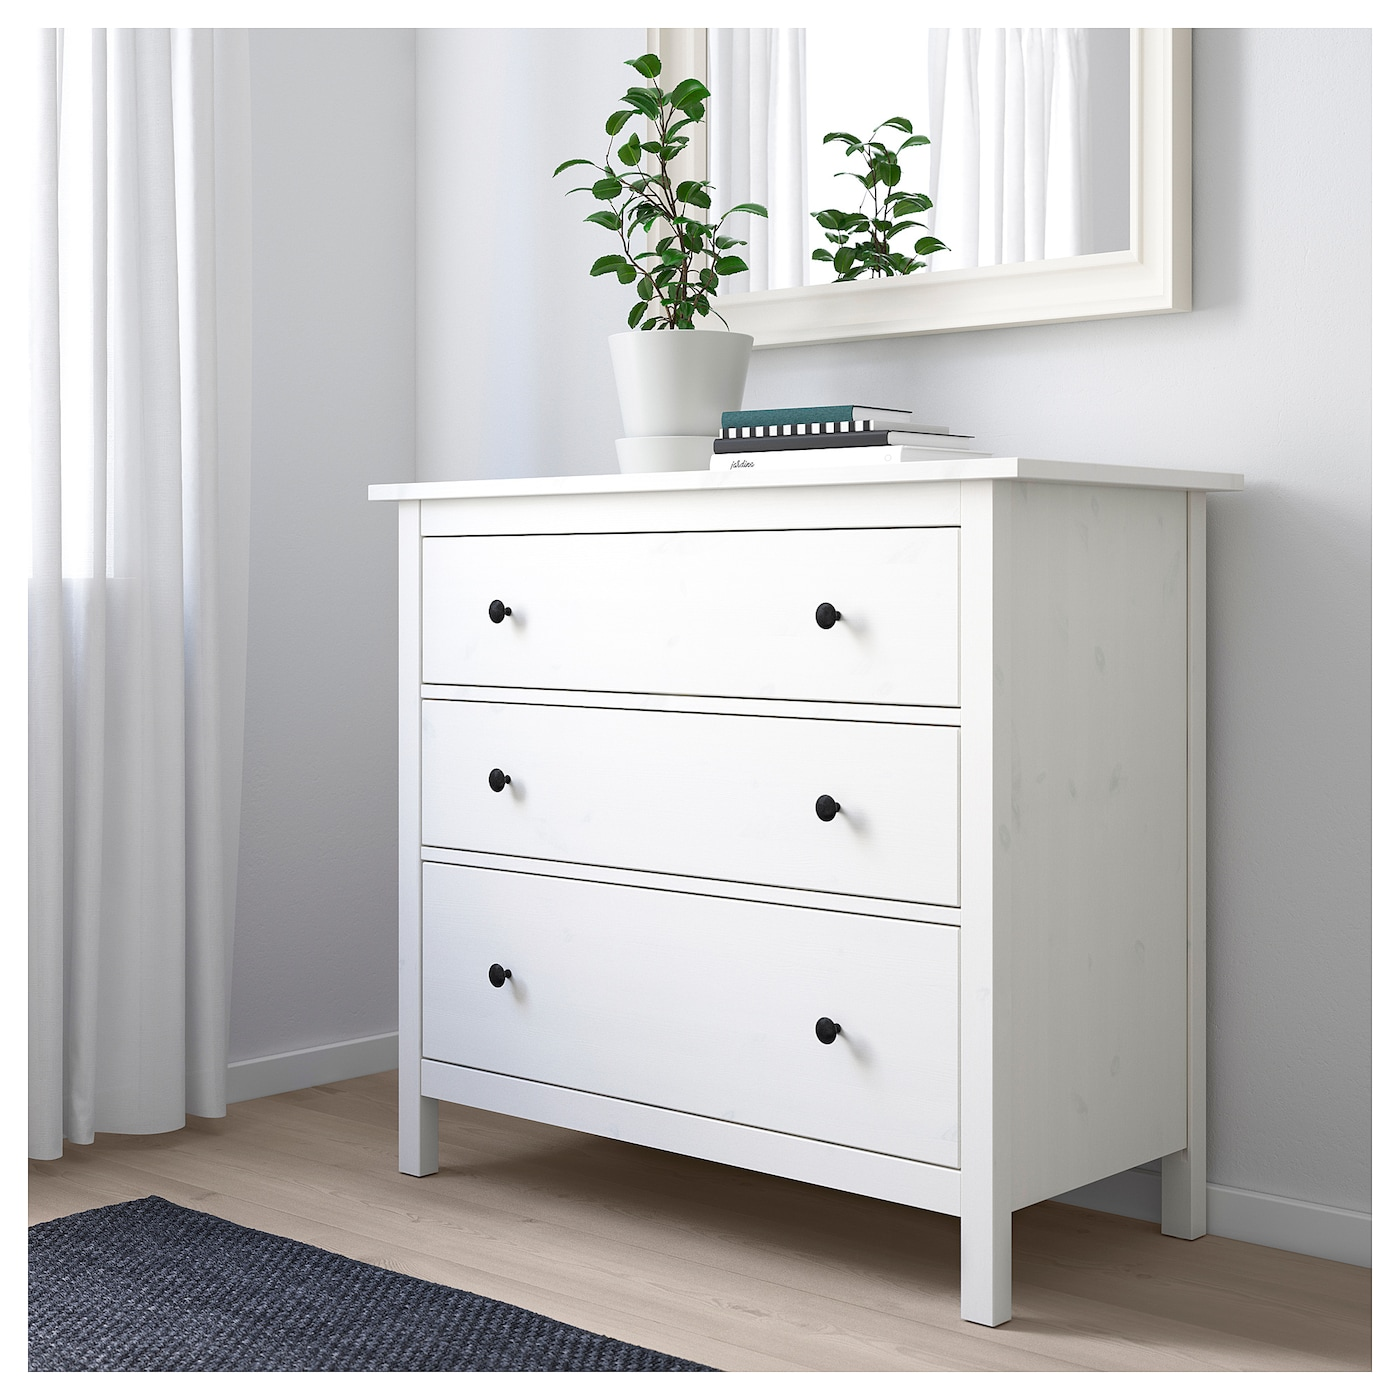 hemnes chest of 3 drawers white stain 108x96 cm ikea. Black Bedroom Furniture Sets. Home Design Ideas